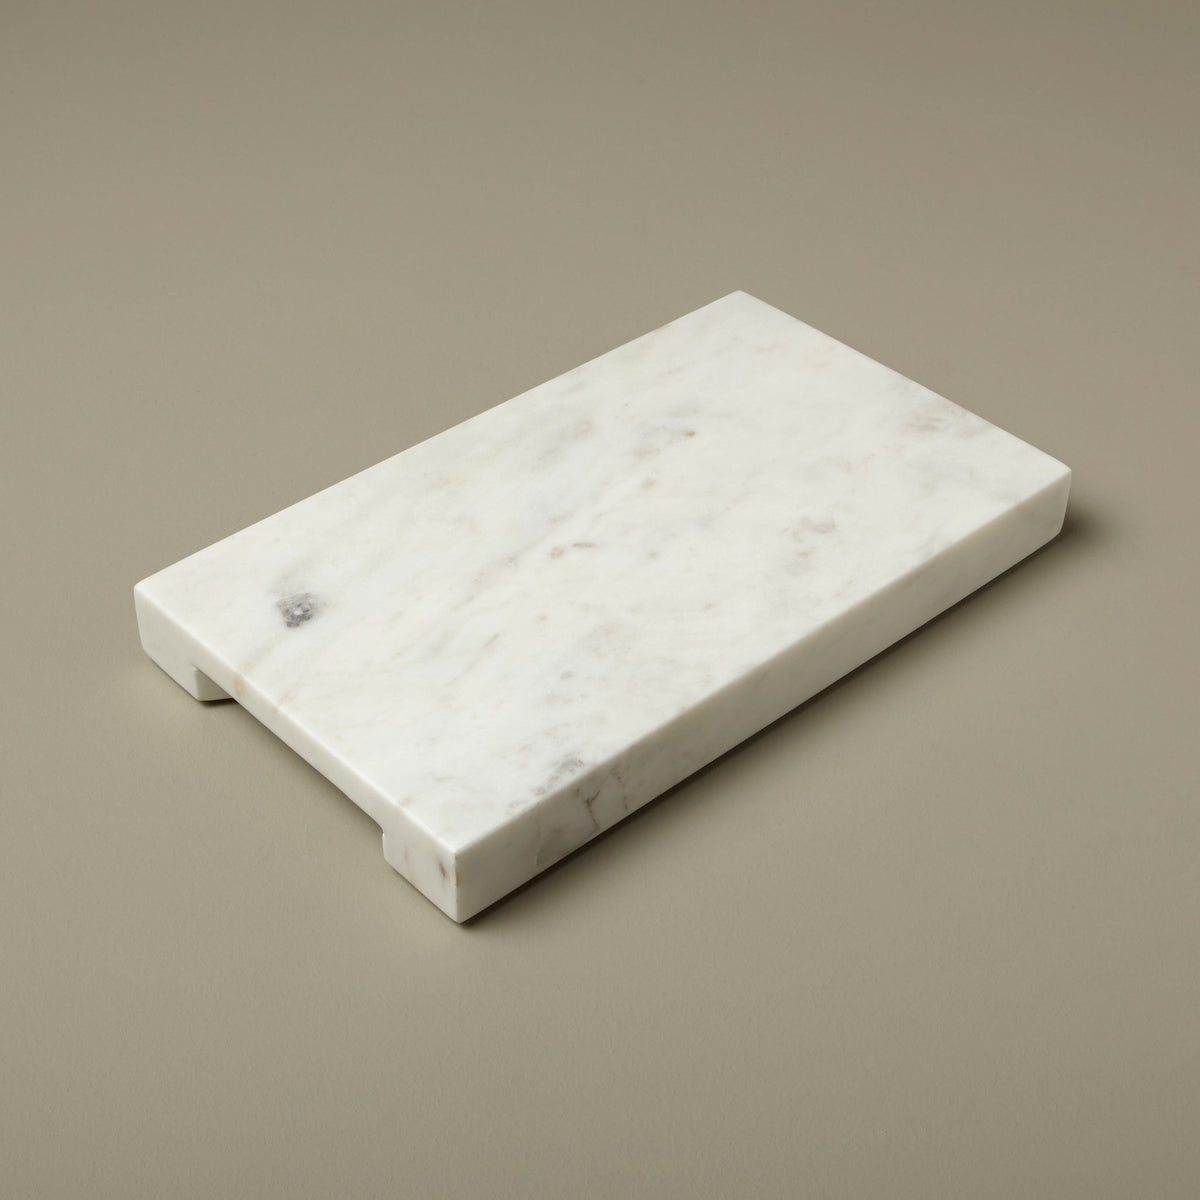 White Marble Prep Board with Handle Grooves